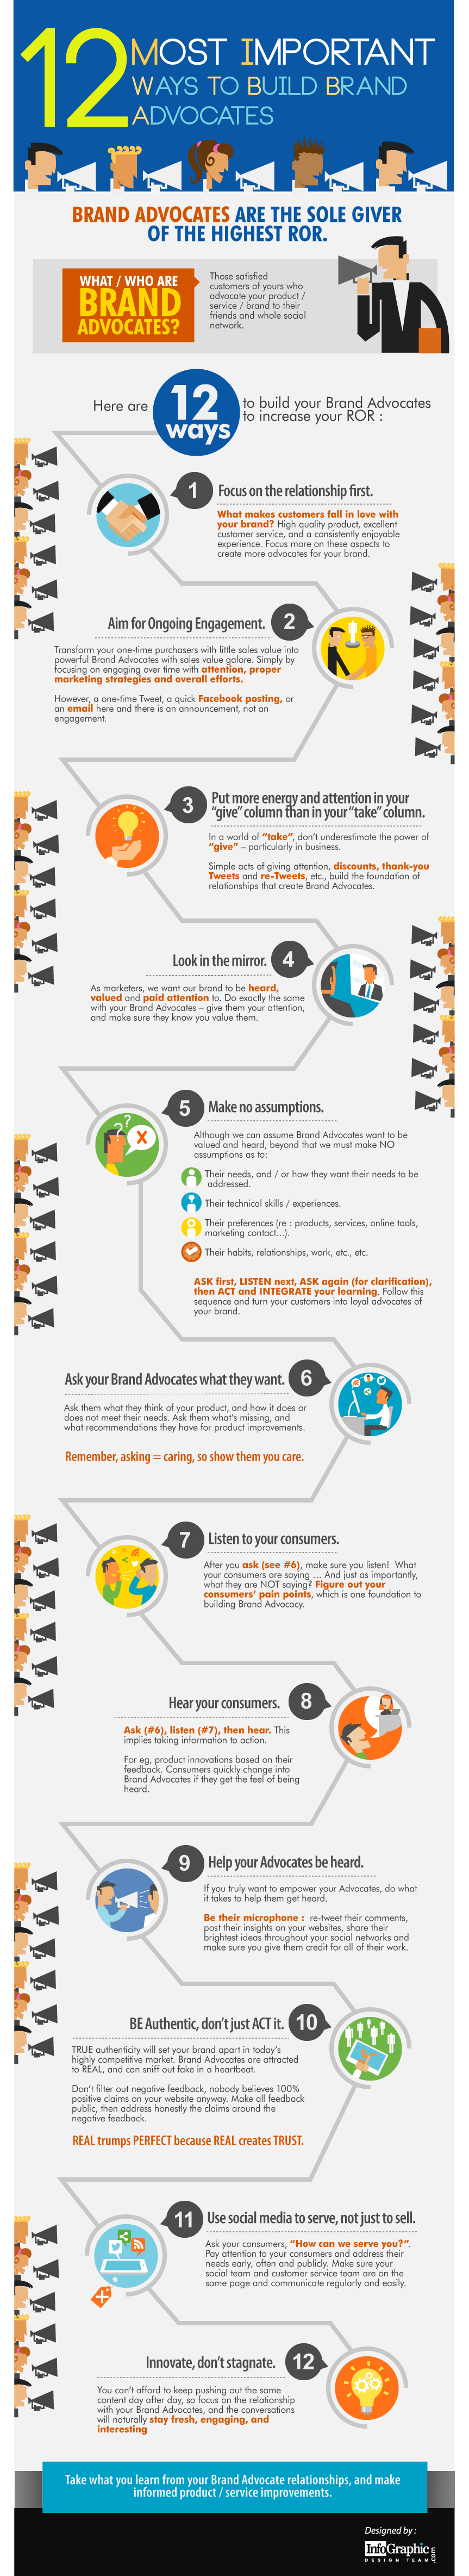 BrandAdvocates Infographic 5.10.14